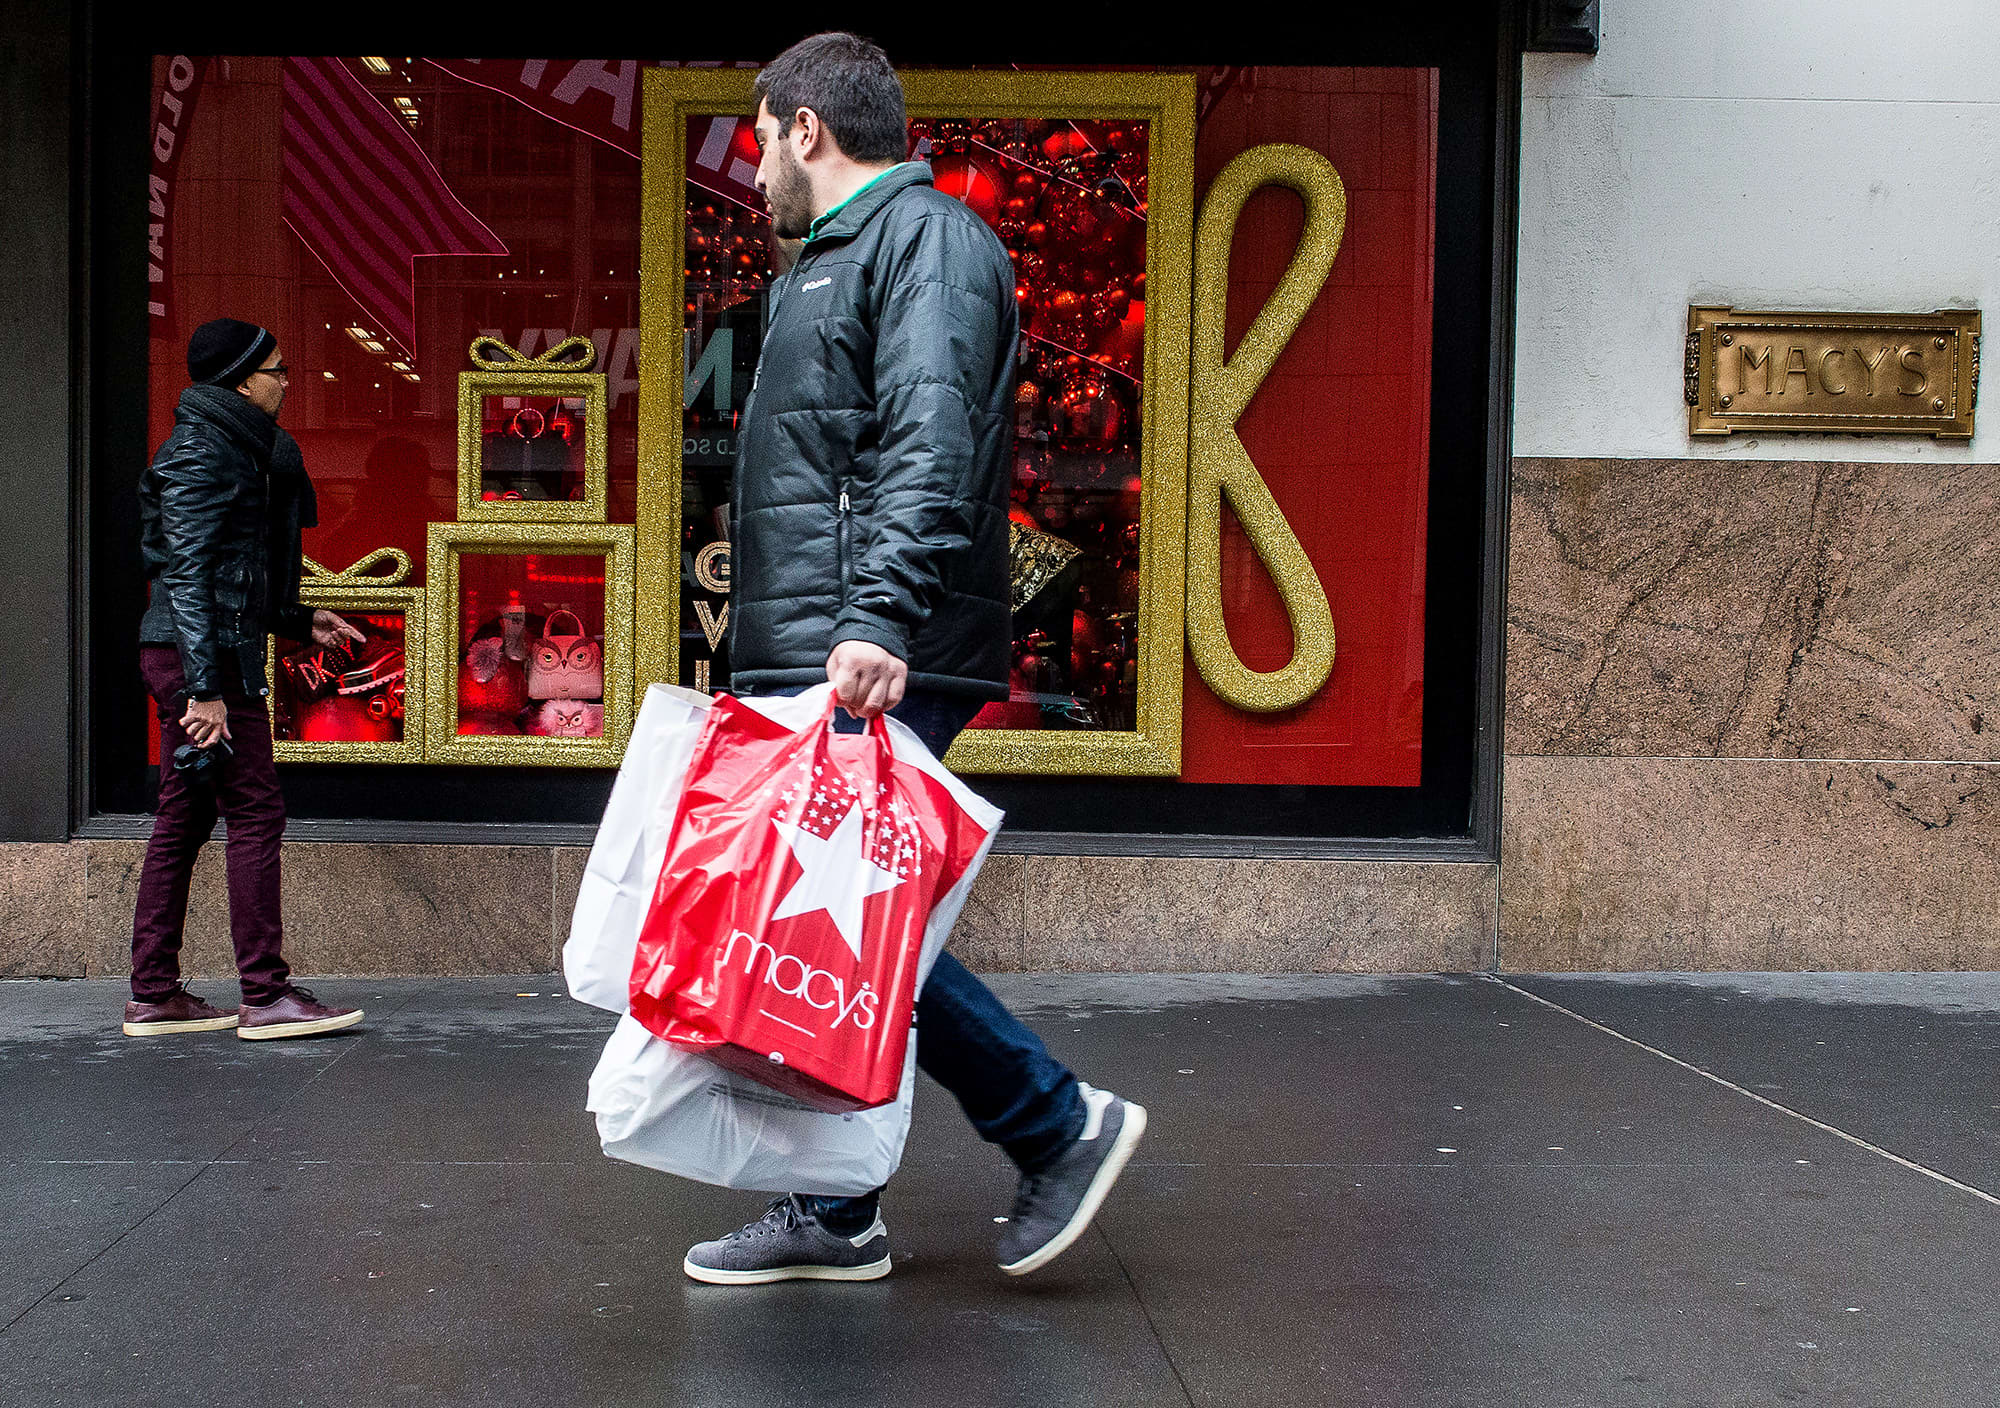 Retail trade group sees holiday sales rising 3.8% to 4.2% this year, citing 'uncertainty over trade'